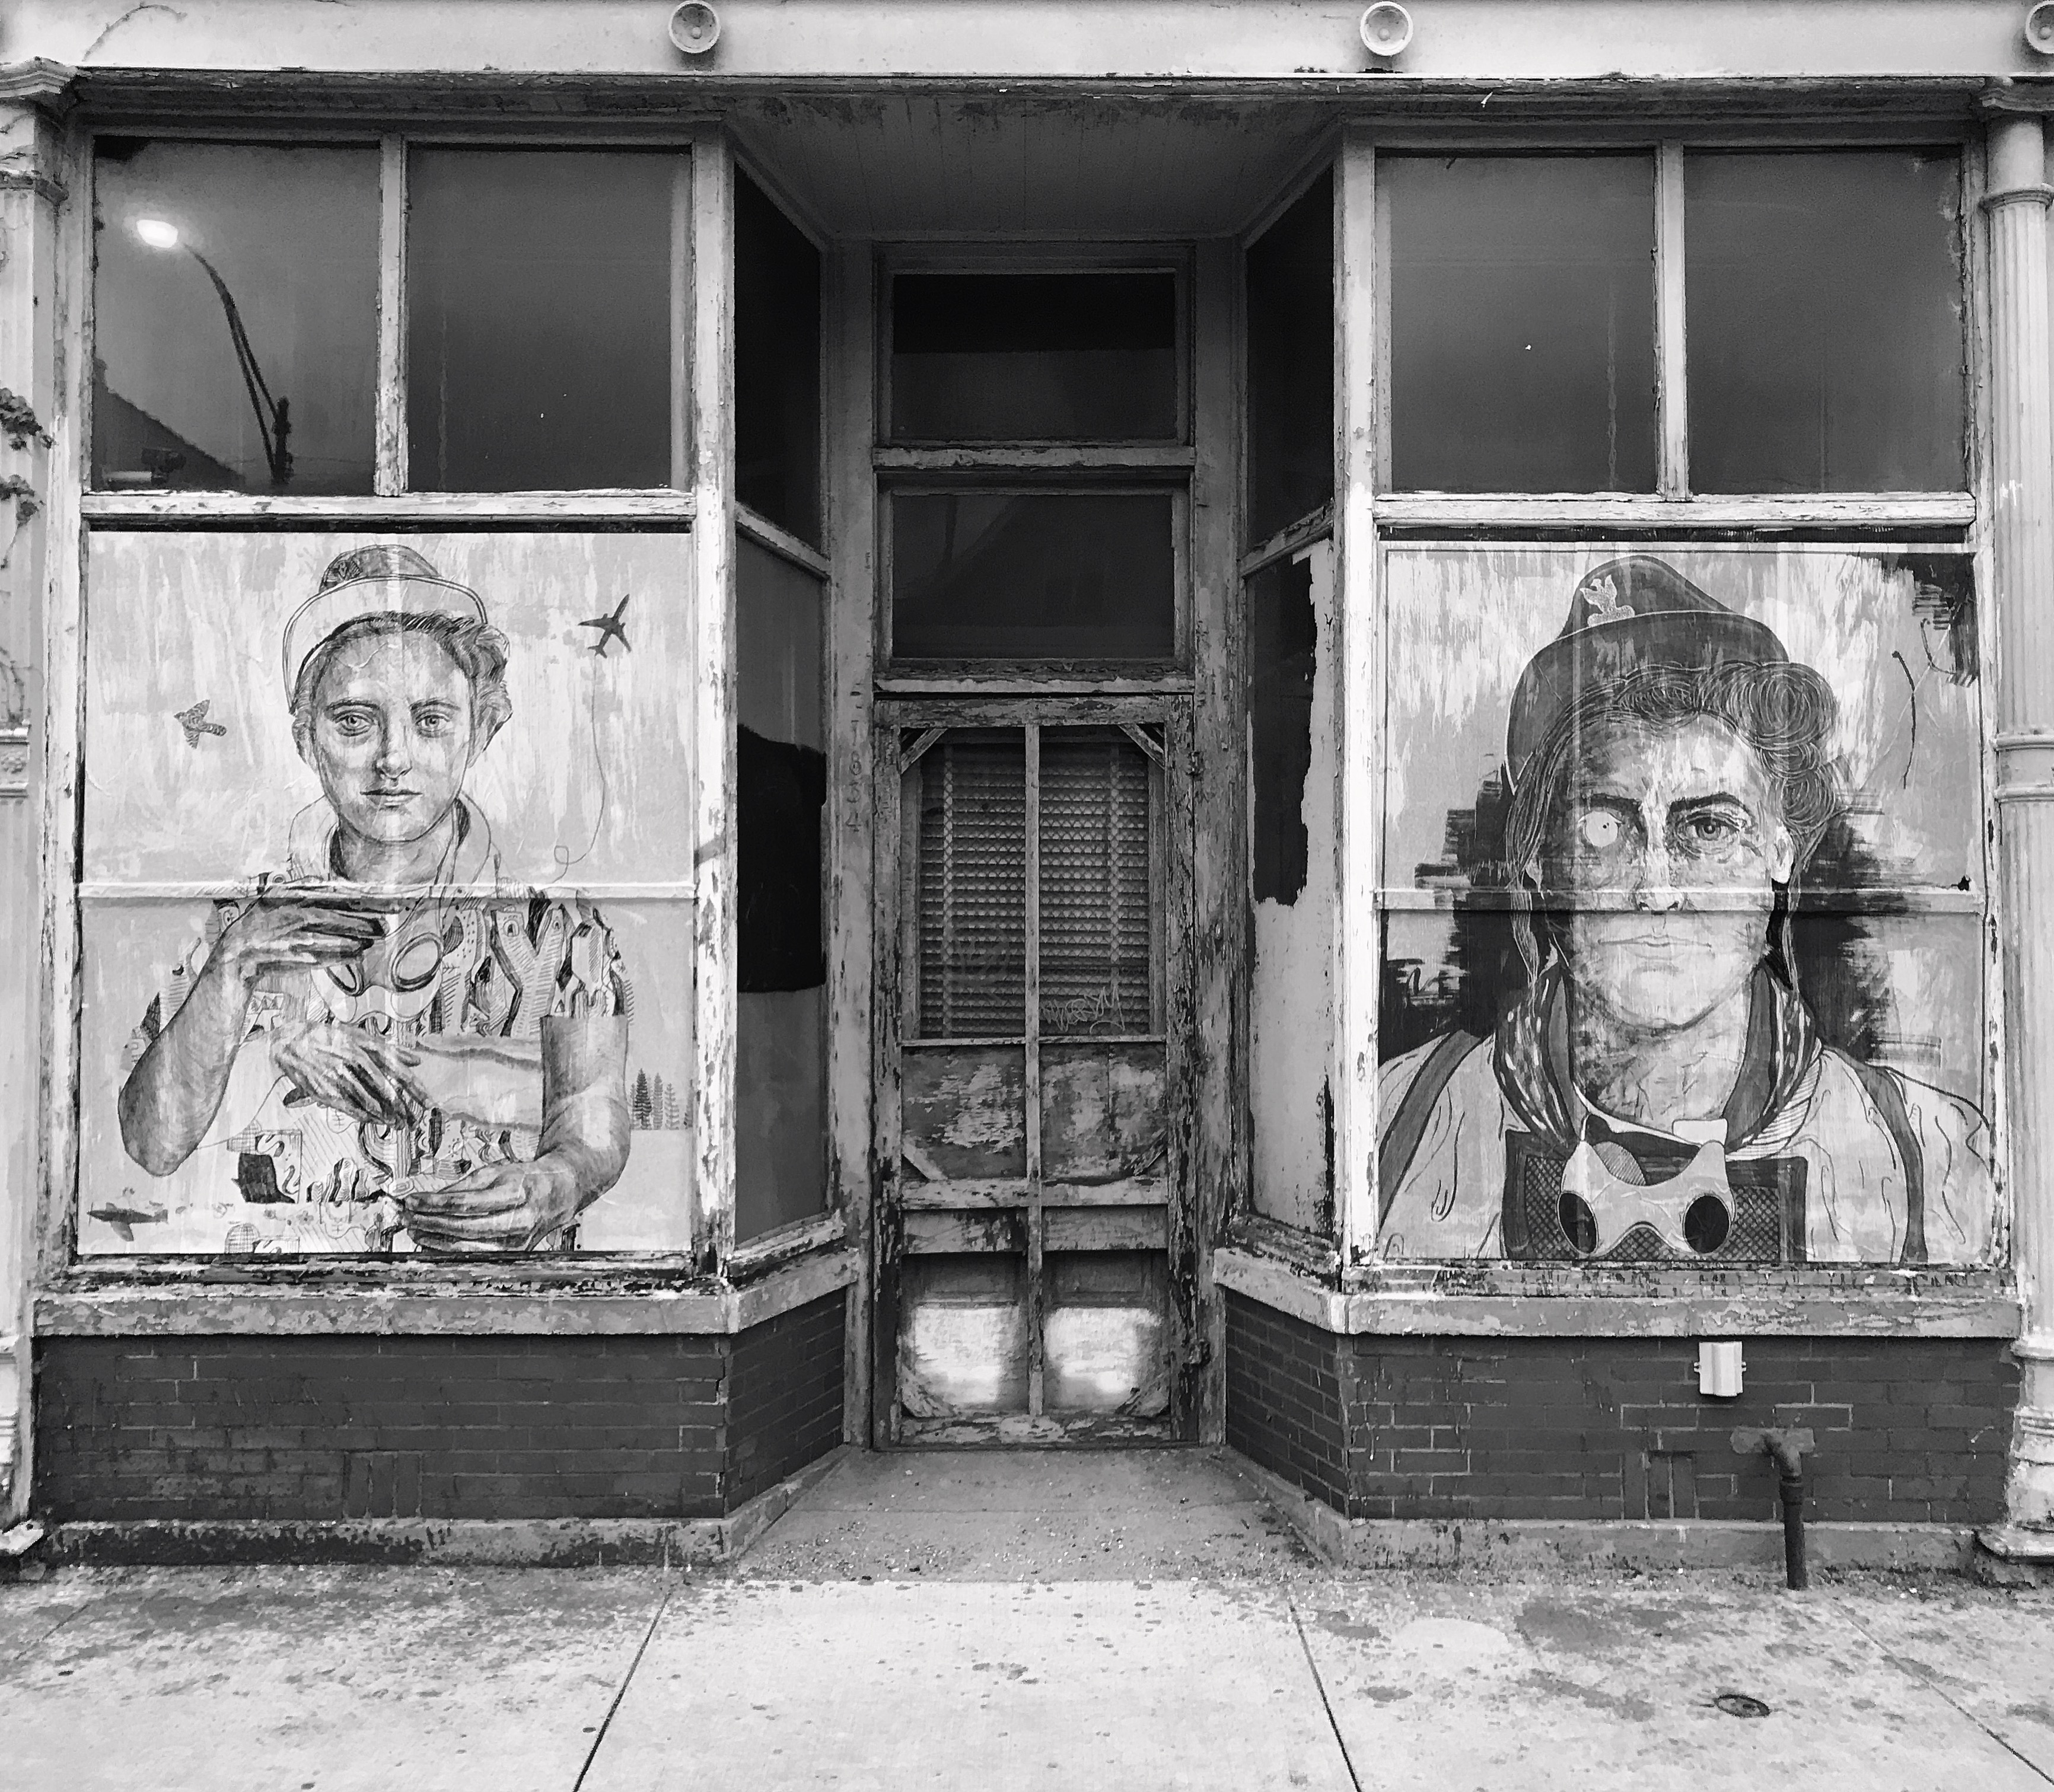 """PITR/Pizza In The Rain's Ambitious """"Good Example"""" Project in Chicago Artes & contextos Good Example 3 Portrait of Janina Forbertowna Danny Sobor x PITR"""